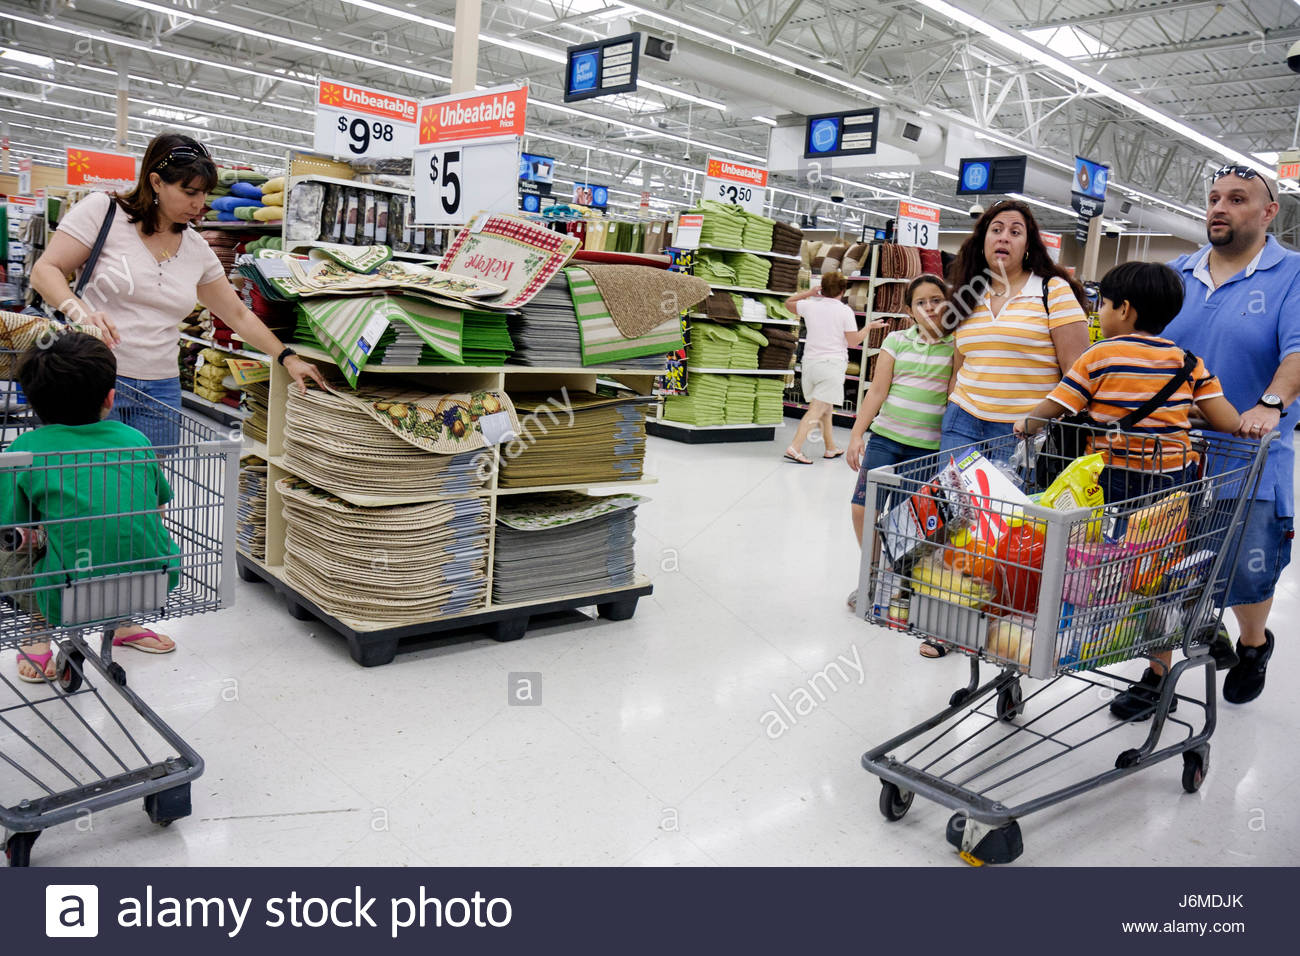 Miami Hialeah Florida Wal-Mart Walmart shopping for sale retail display Hispanic family mother father children boy - Stock Image